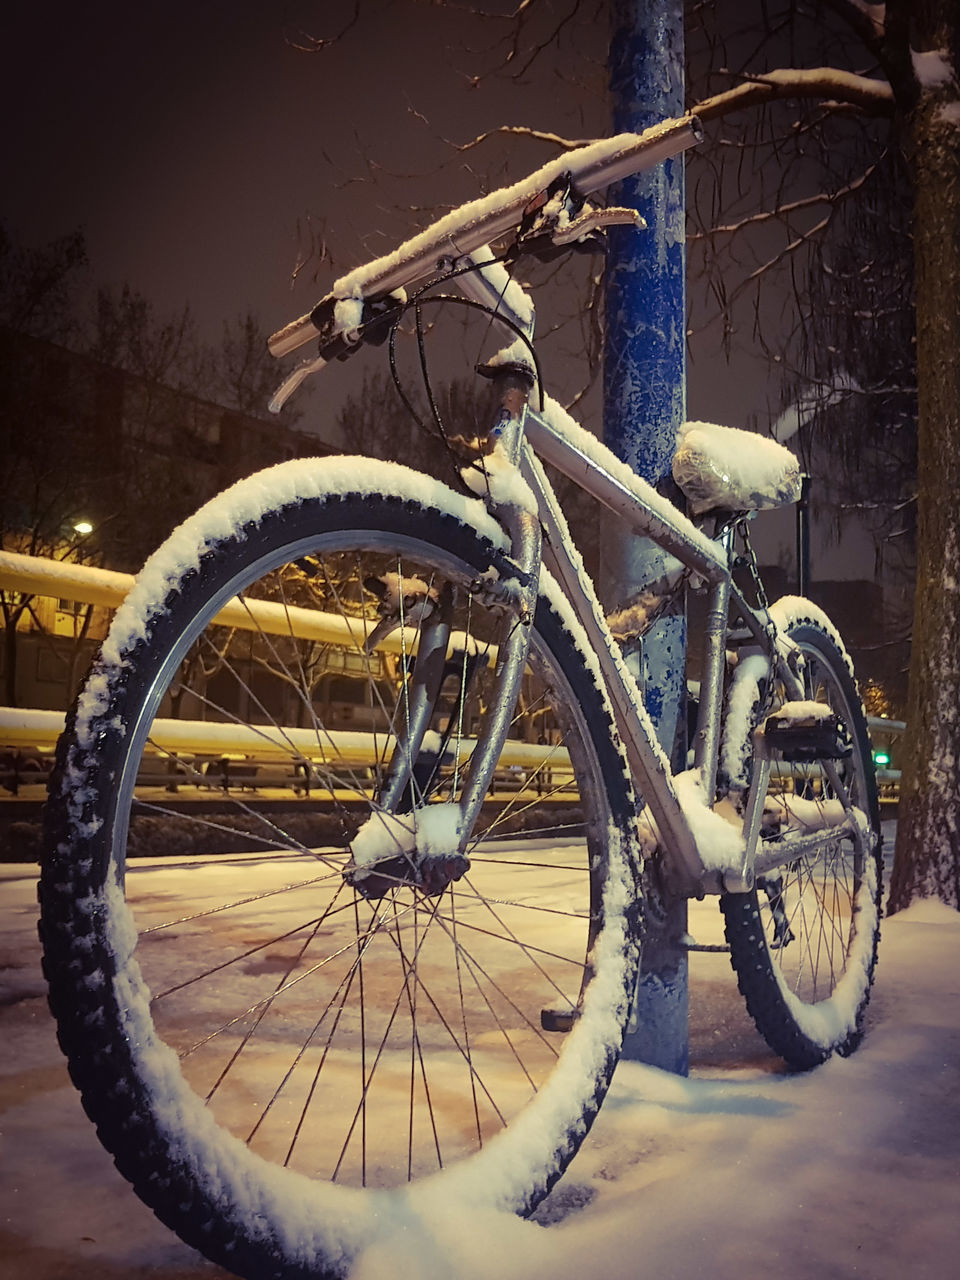 CLOSE-UP OF BICYCLE PARKED ON SNOW COVERED CAR